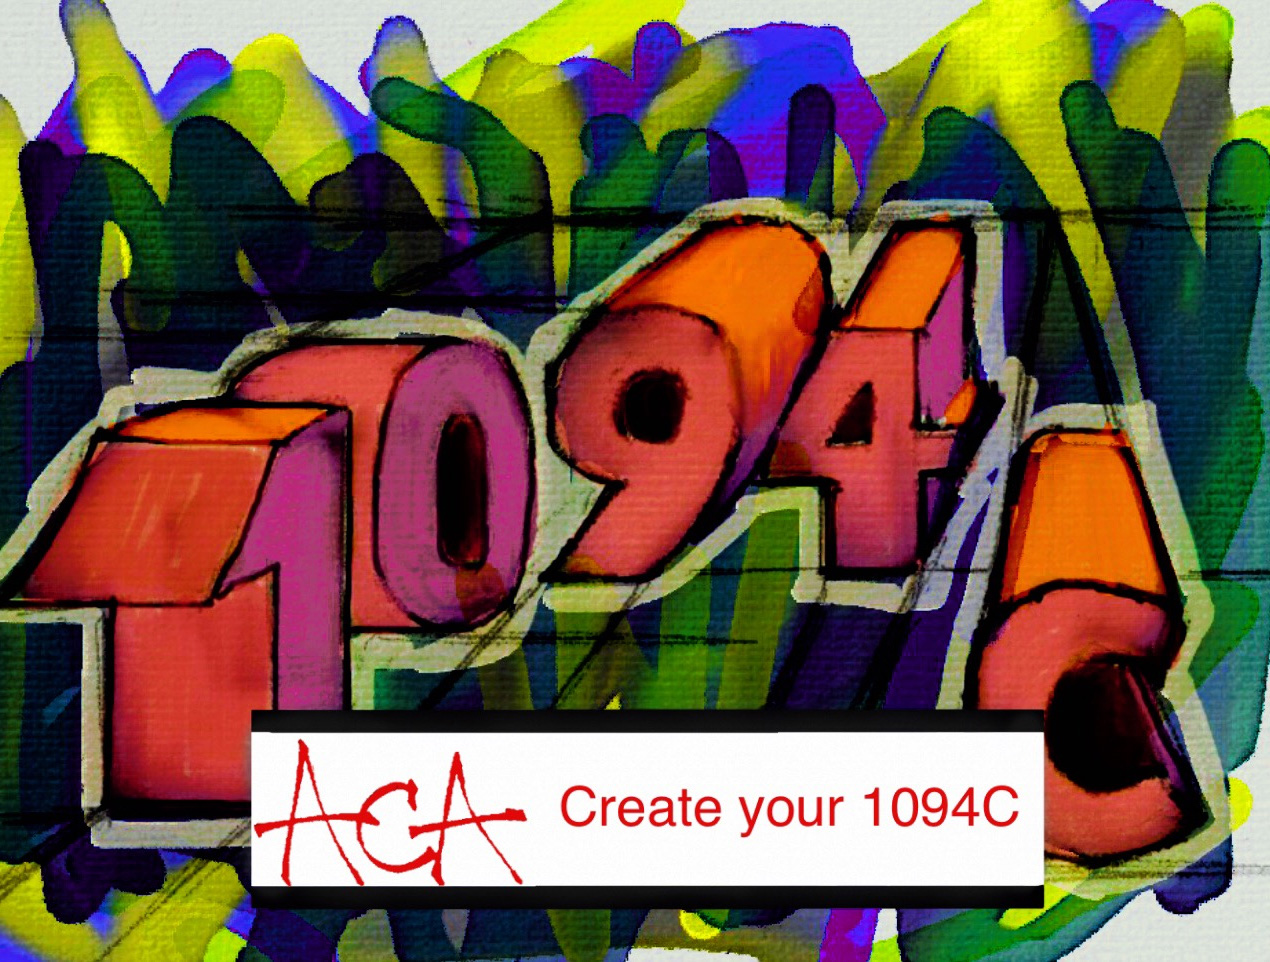 ACA How To Part 4 - adding 1094C